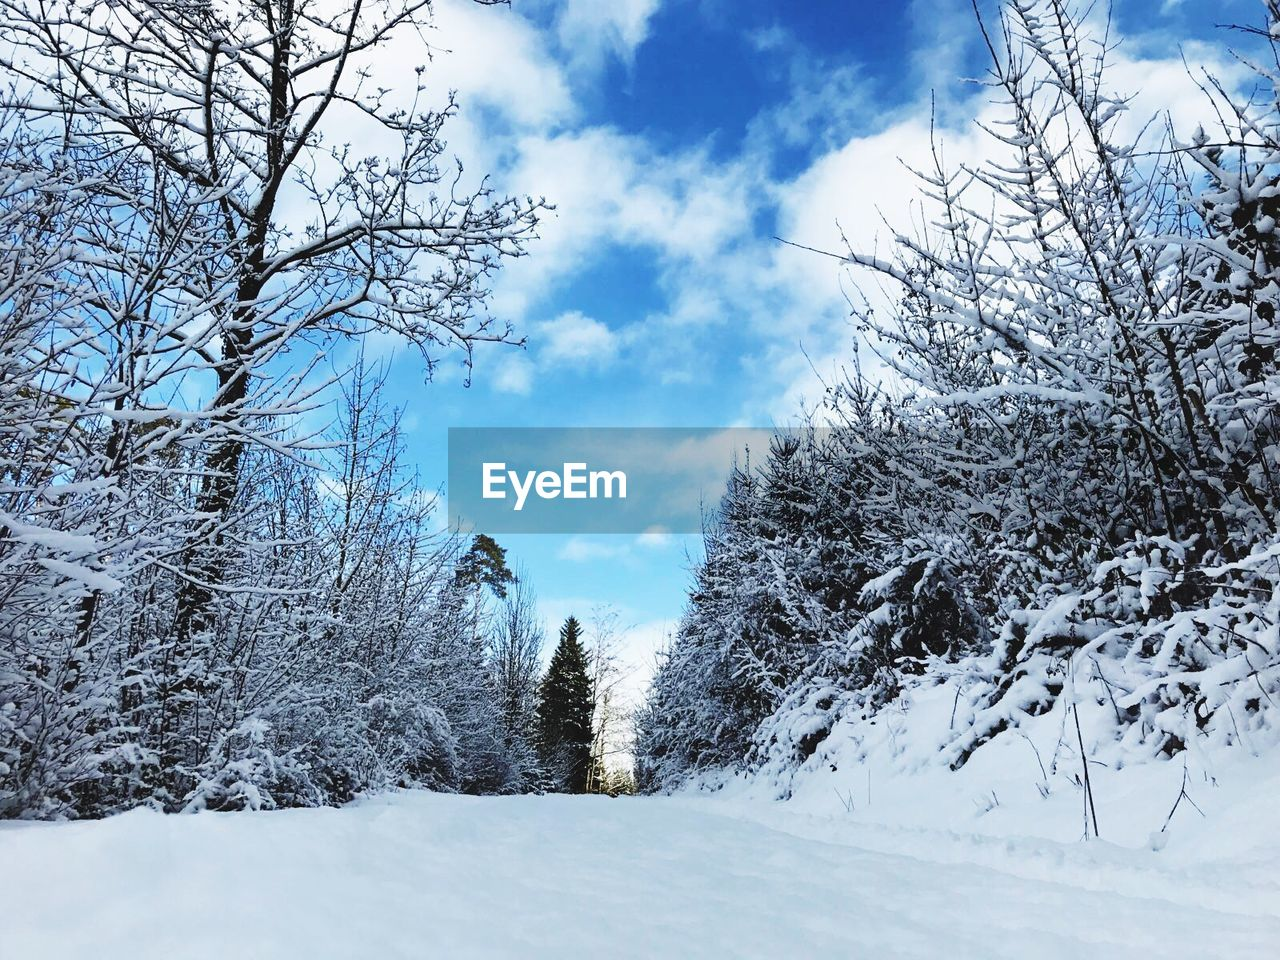 snow, winter, cold temperature, nature, beauty in nature, tranquility, tree, tranquil scene, weather, sky, bare tree, scenics, no people, cloud - sky, day, outdoors, landscape, low angle view, branch